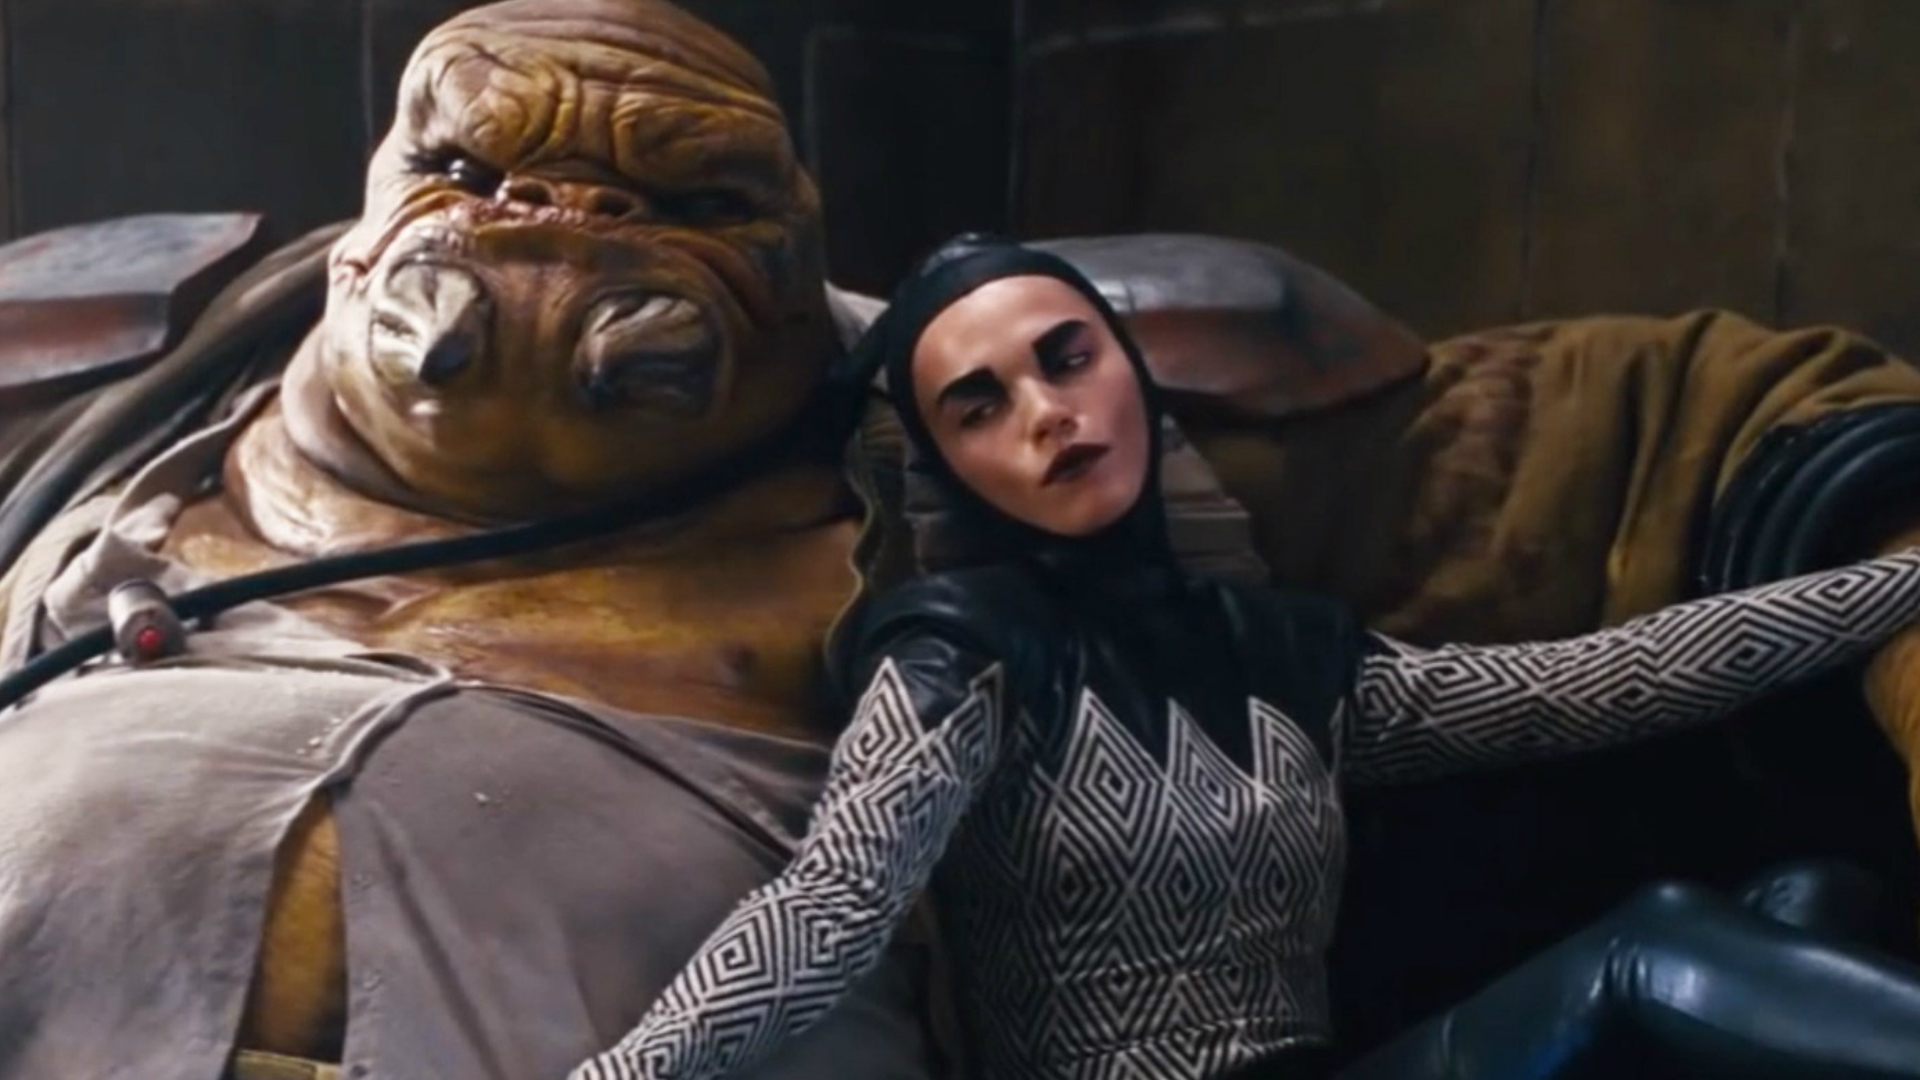 Anna Brewster in Star Wars: The Force Awakens